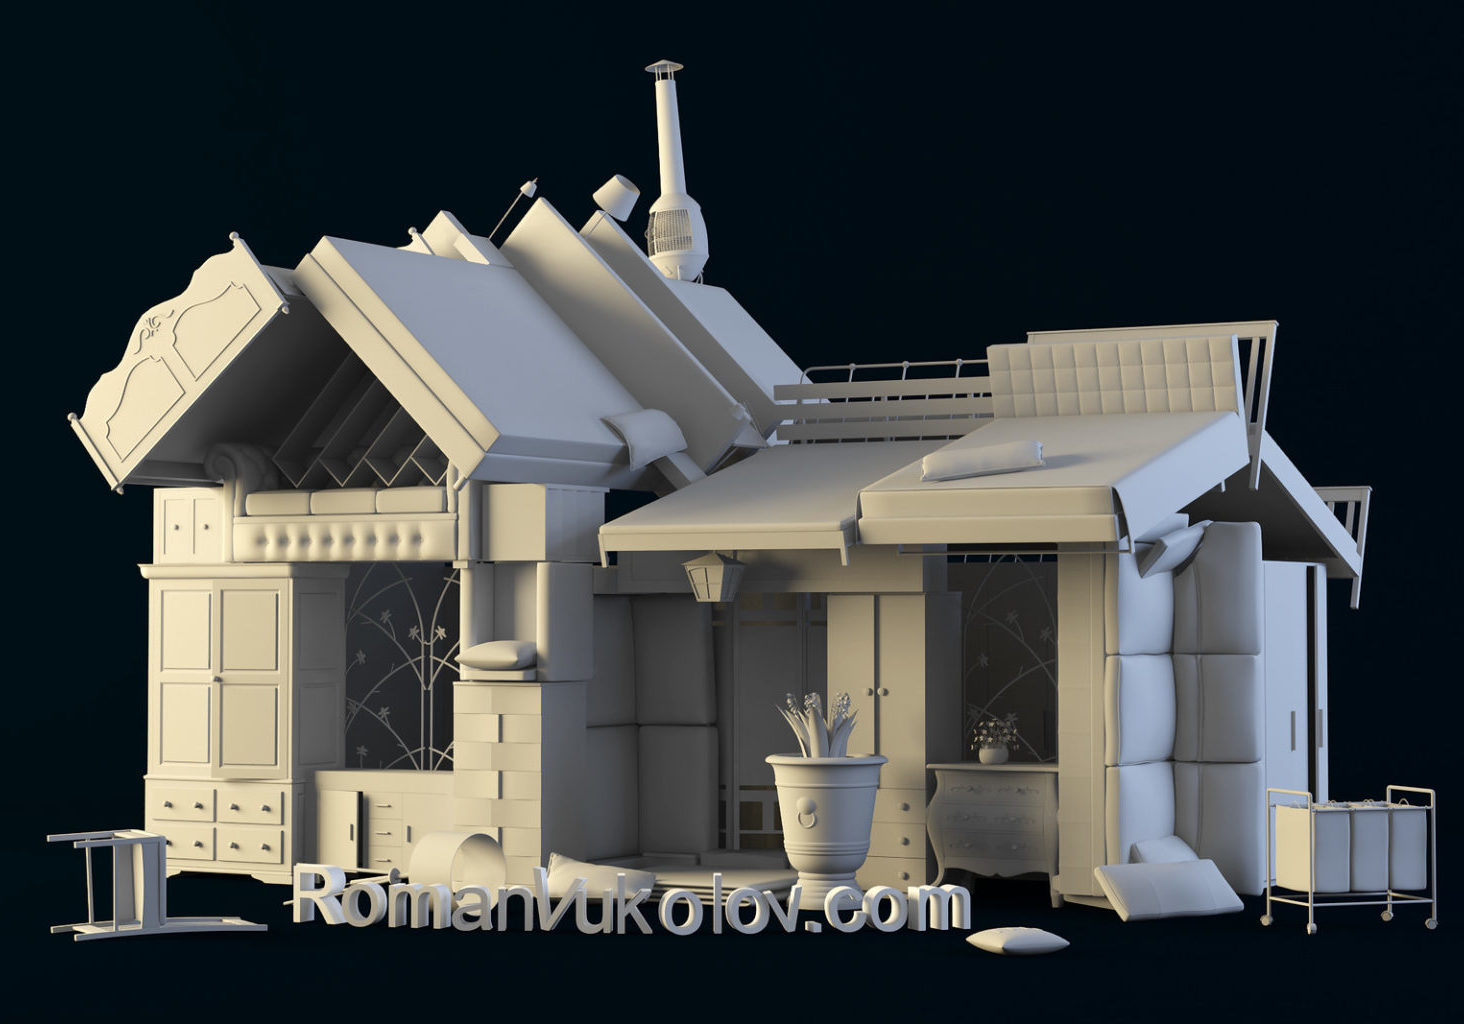 3d modeling and visualization. Roman Vukolov